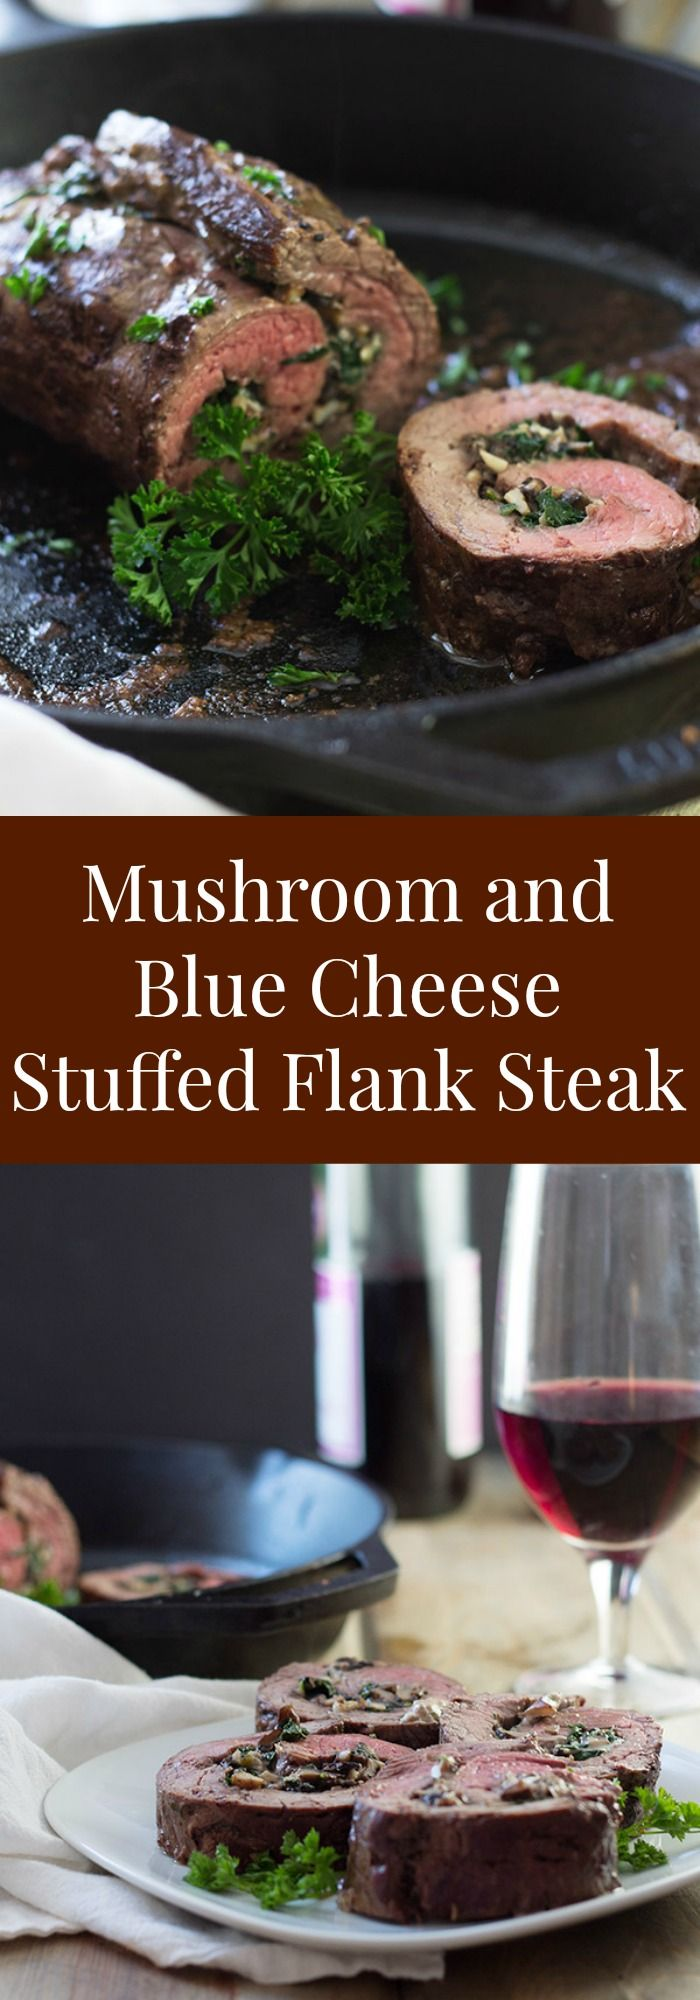 Mushroom and Blue Cheese Stuffed Flank Steak- this is a super easy recipe that…